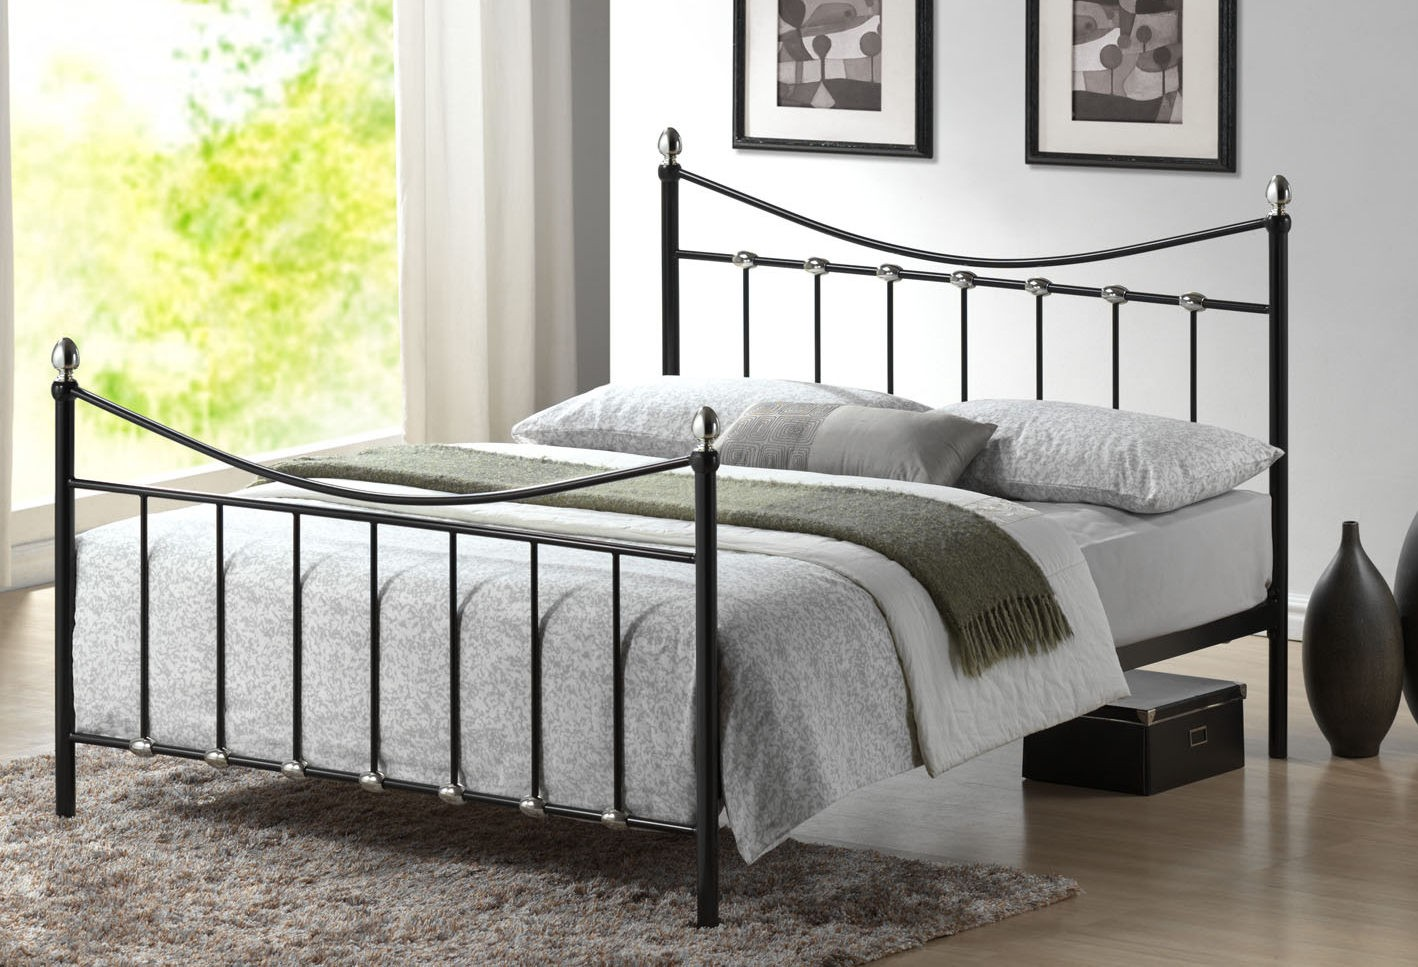 Metal beds in bedroom design - Bed frames for small rooms ...